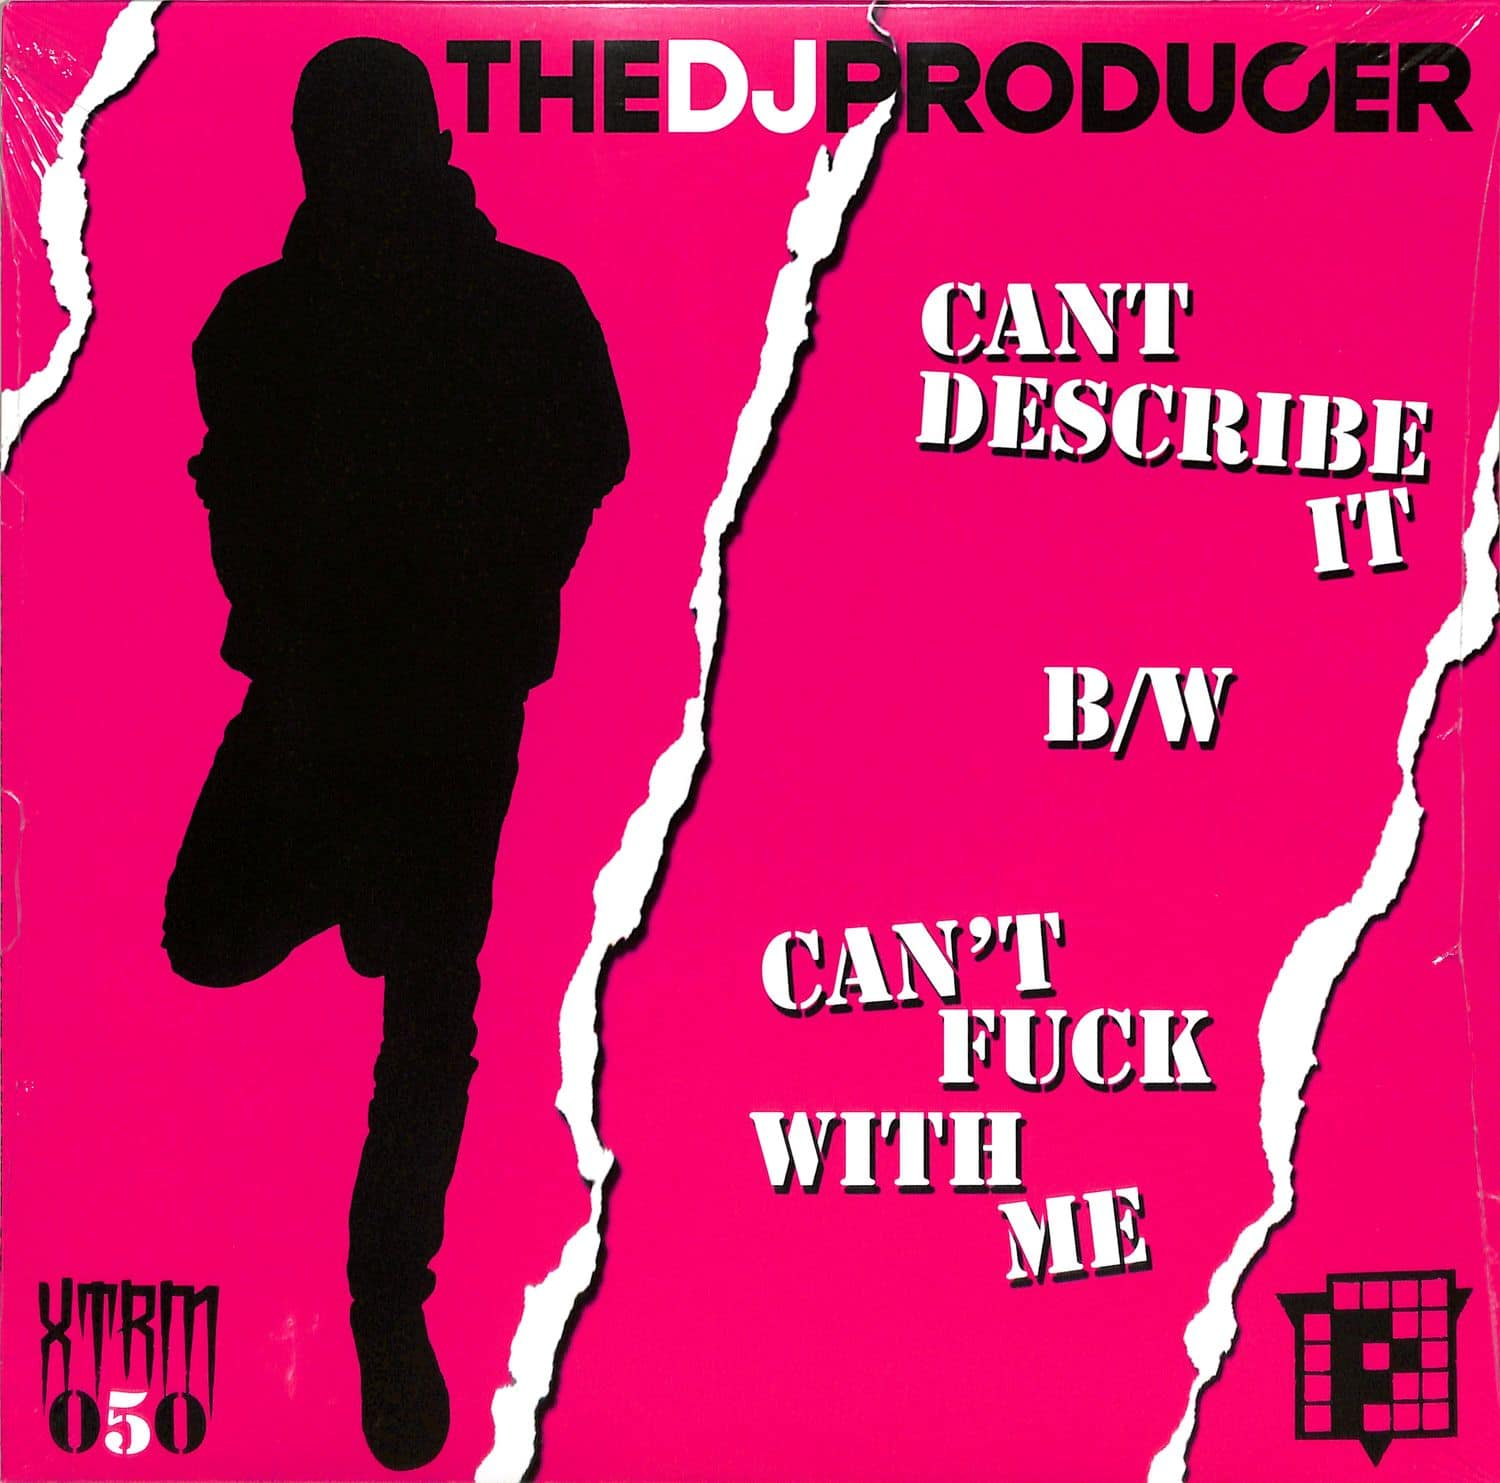 The DJ Producer - CANT DESCRIBE IT